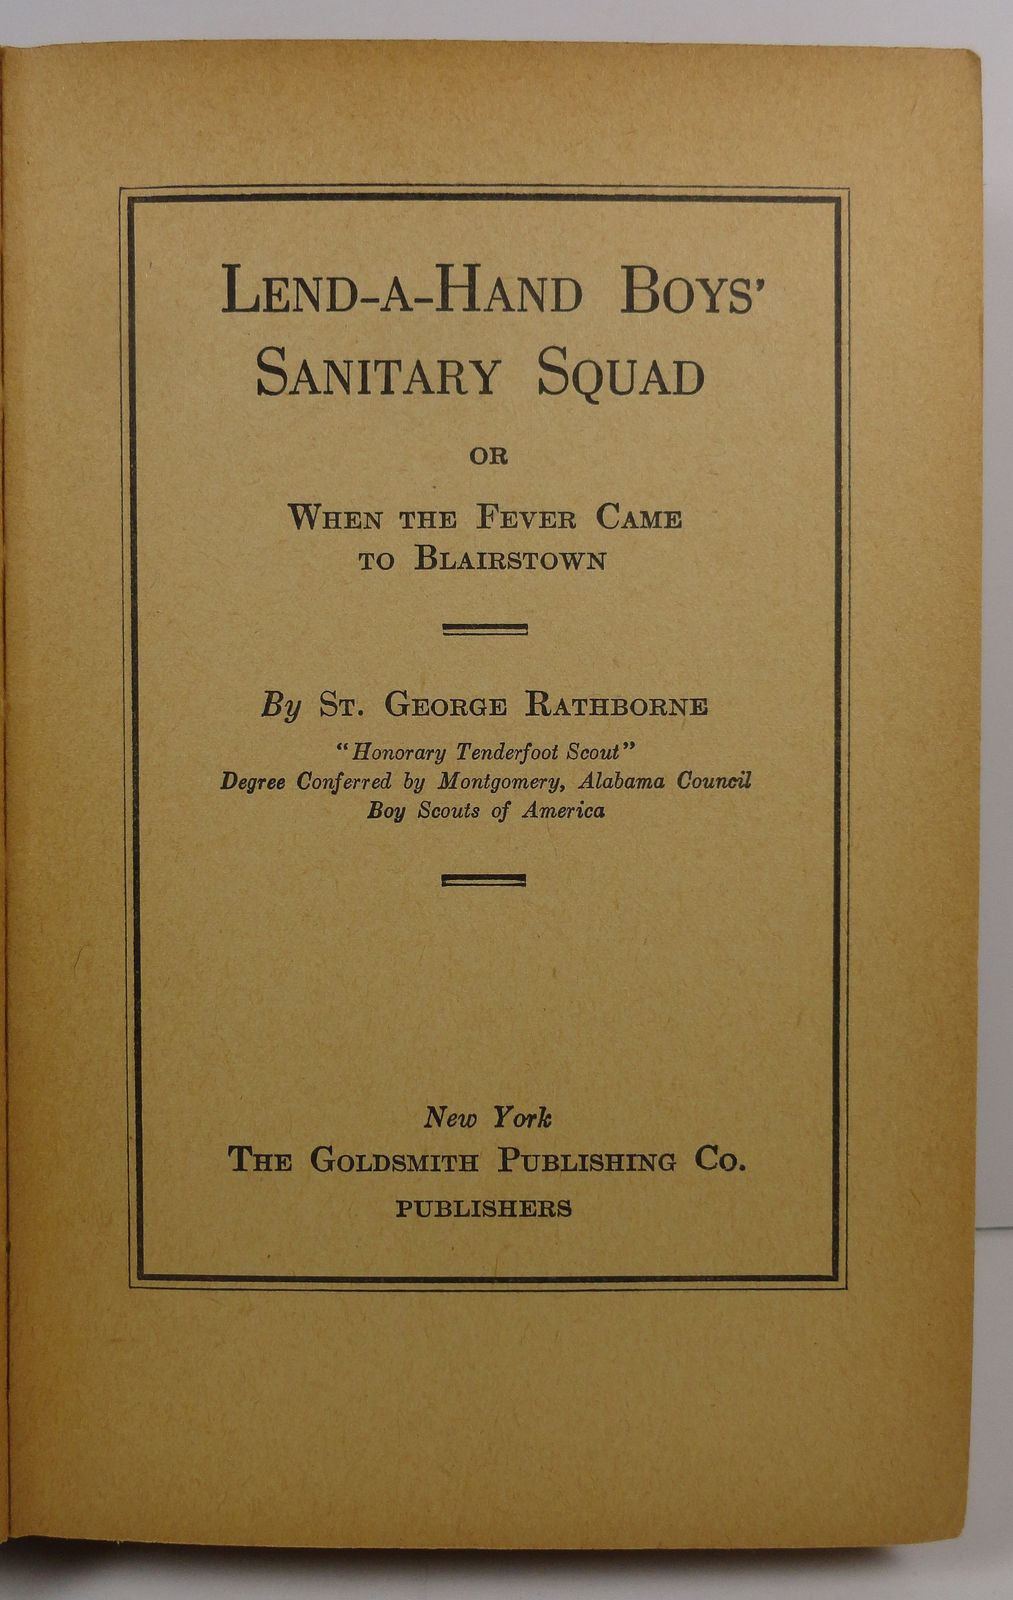 The Lend a Hand Boys Sanitary Squad by St. George Rathborne